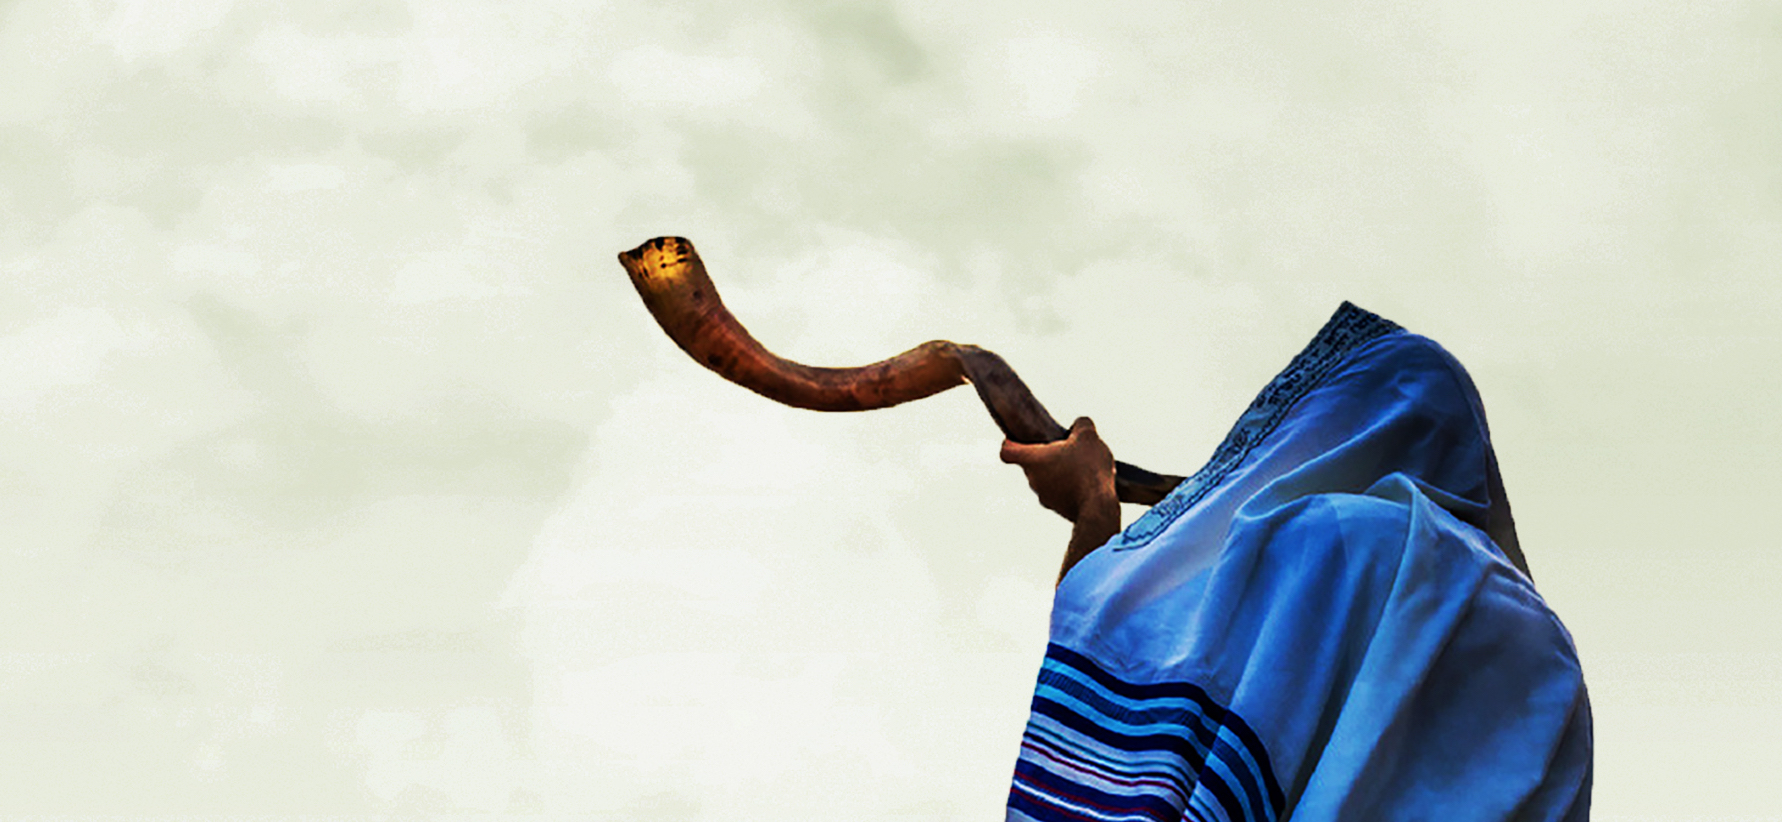 shofar_graphic.jpg